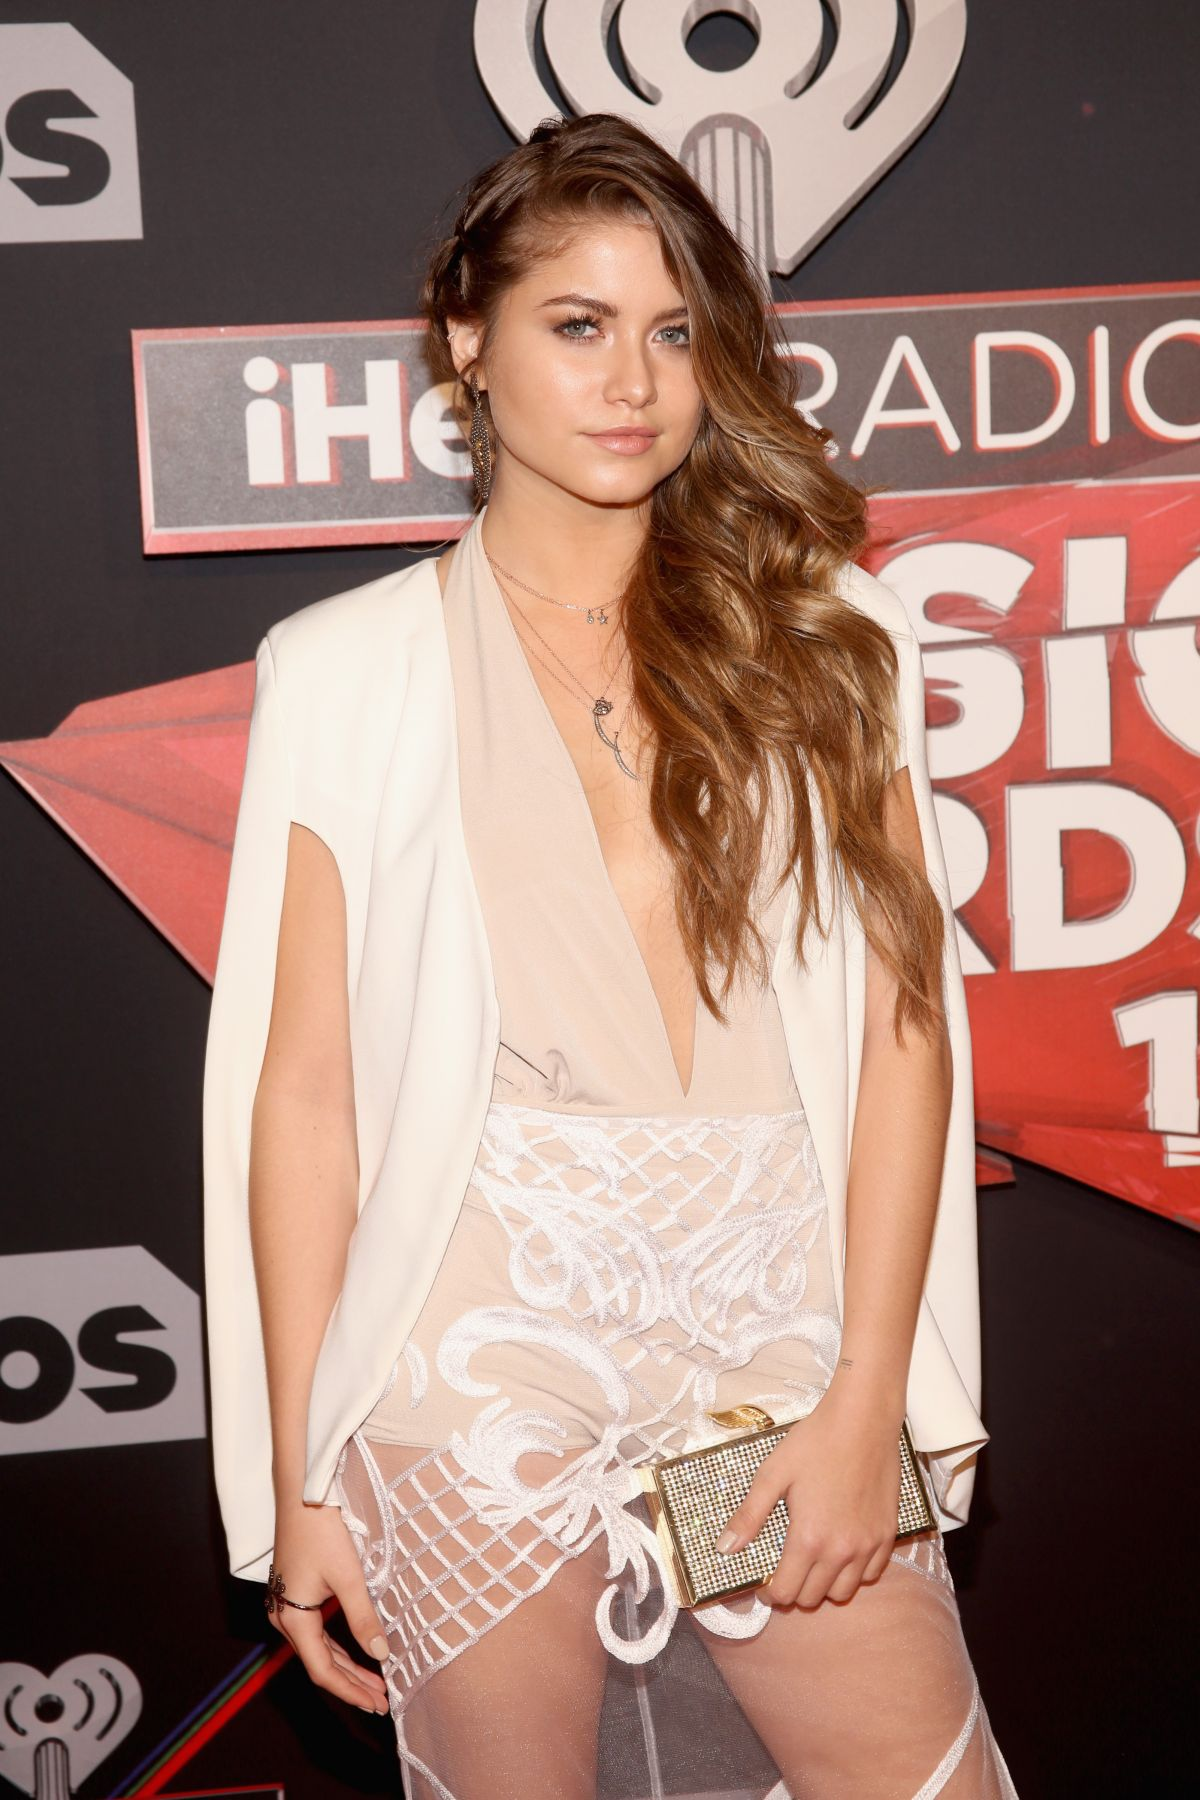 SOFIA REYES at 2017 iHeartRadio Music Awards in Los Angeles 03/05/2017